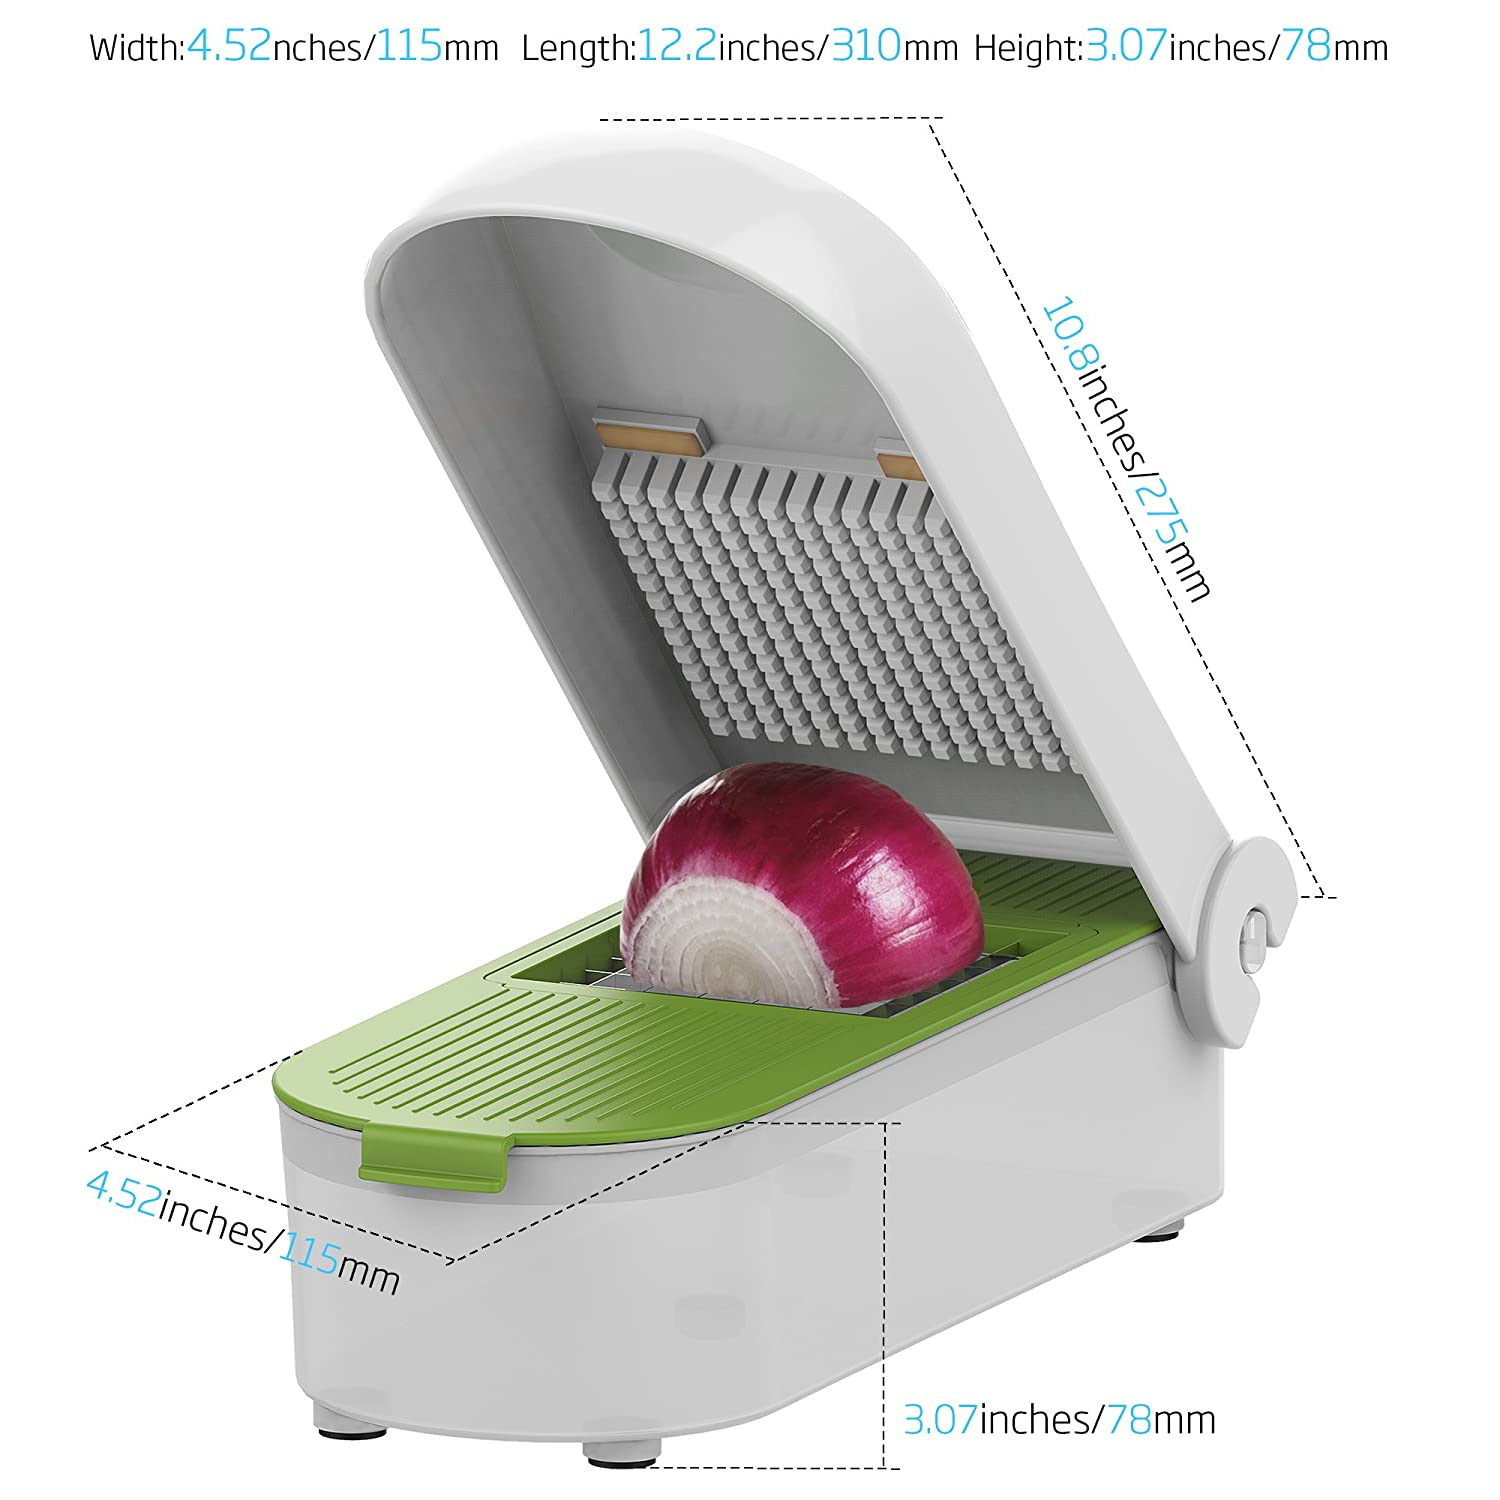 LOVKITCHEN Multifunctional Adjustable Vegetable and Fruit Chopper